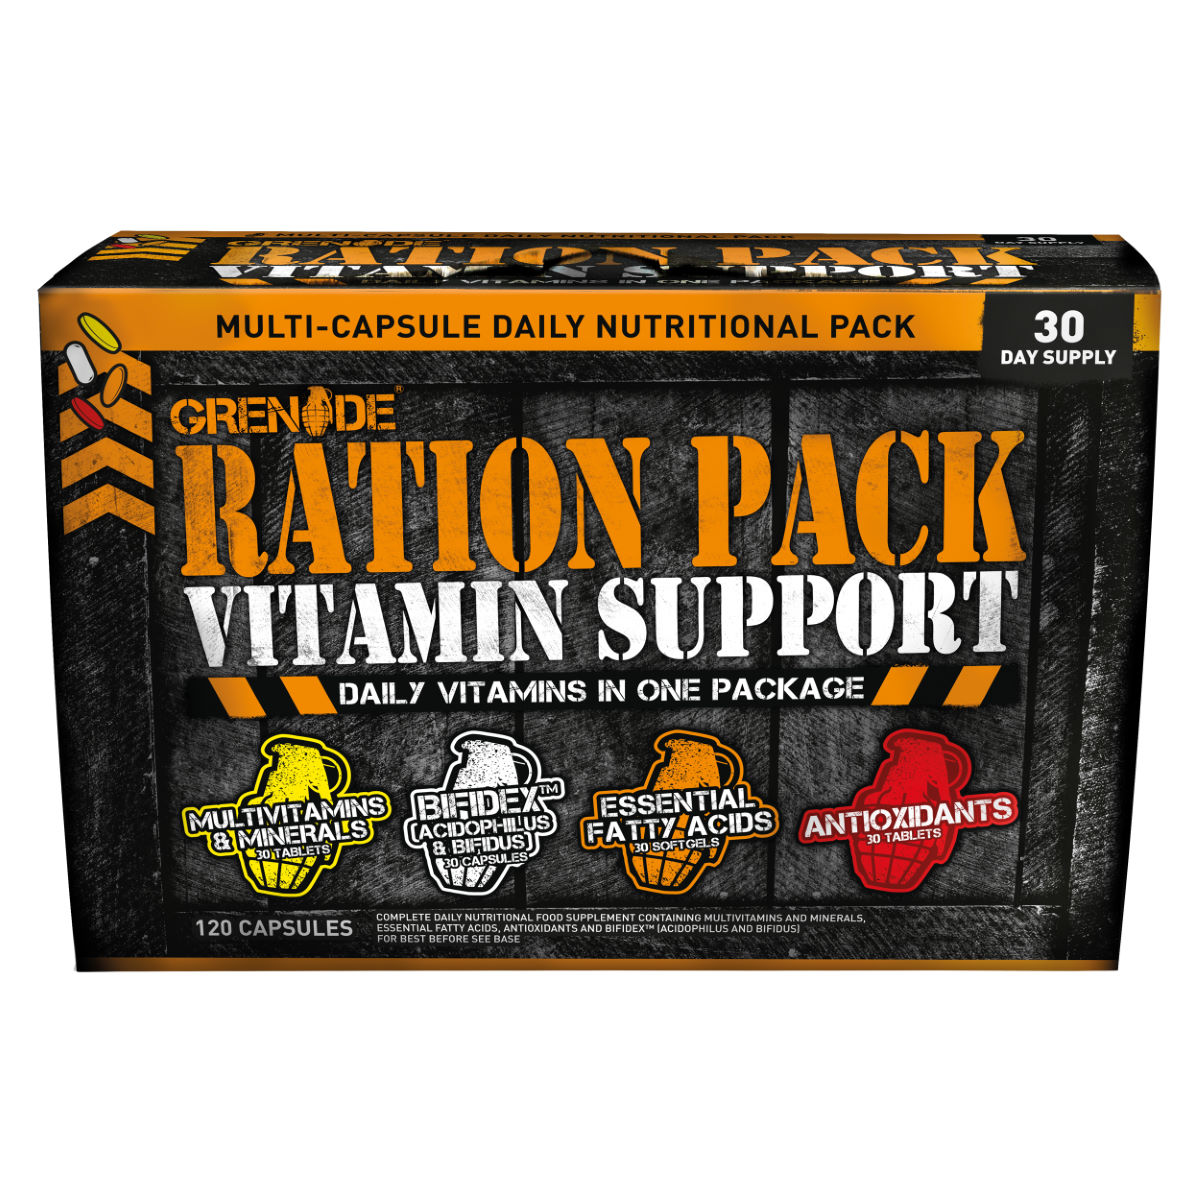 Grenade Grenade Ration Pack Vitamin Support (120 Capsules)   Nutrition packs